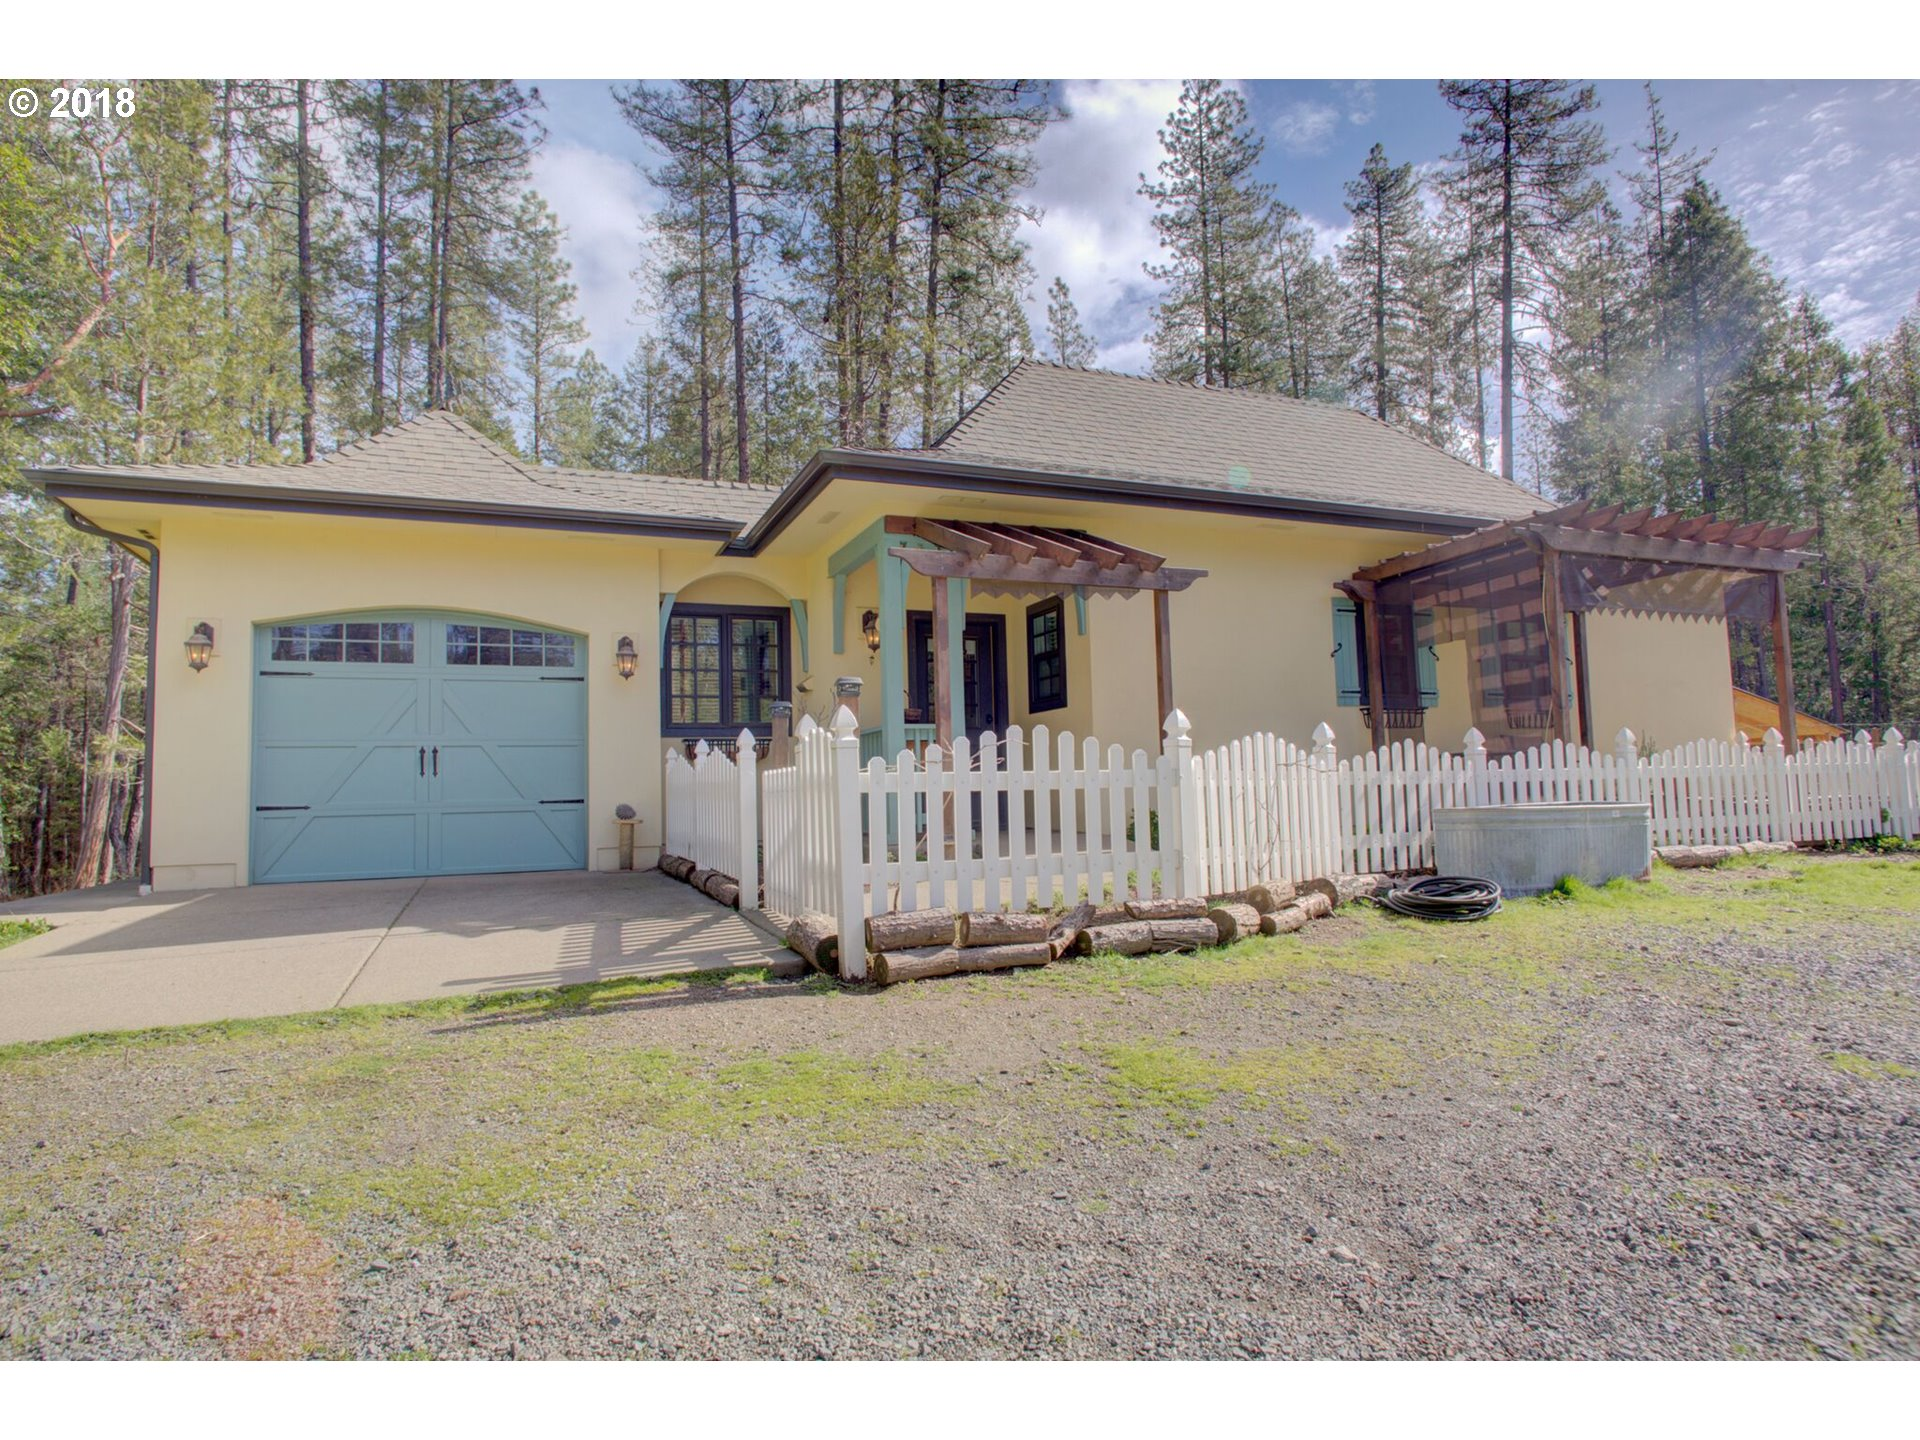 Grants Pass, OR 1 Bedroom Home For Sale